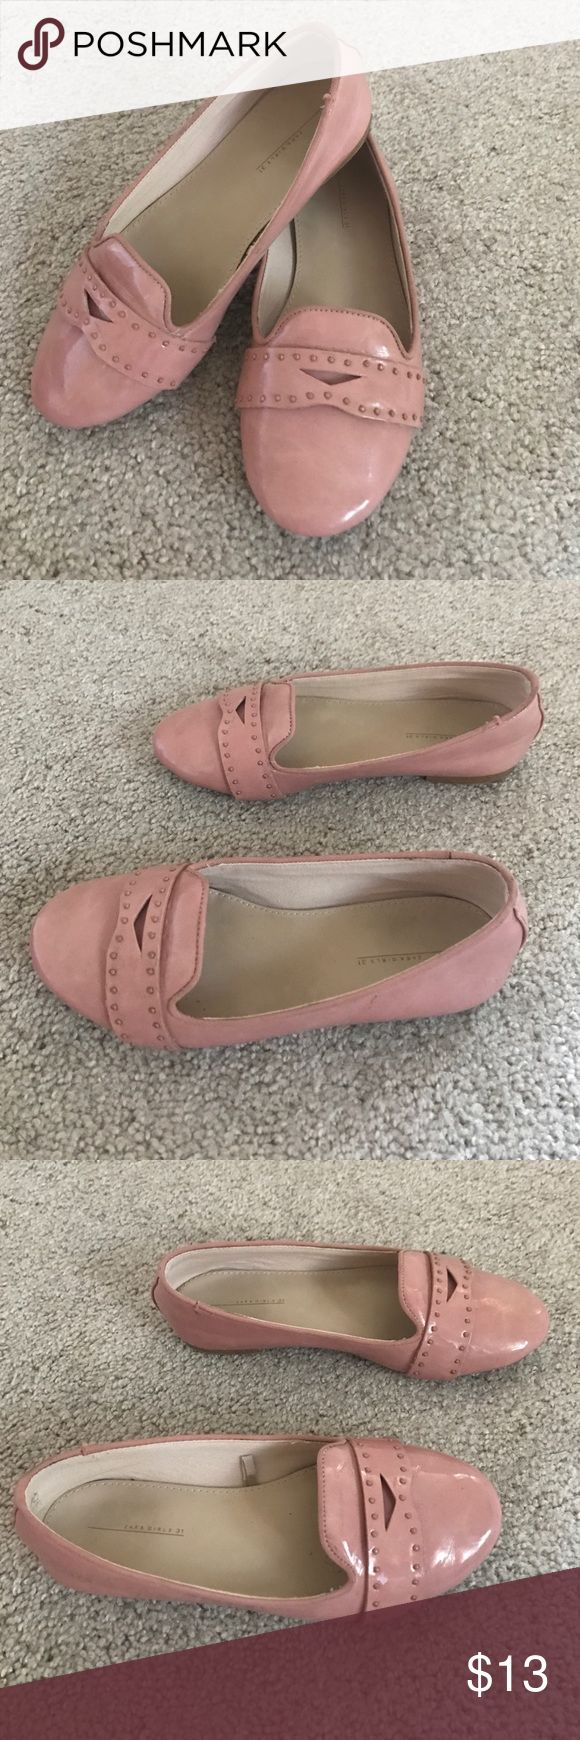 Zara girls dress shoe Used but still has a lot of life. Worn a few times. Bundle and save. Size 31 zara kids Shoes Dress Shoes